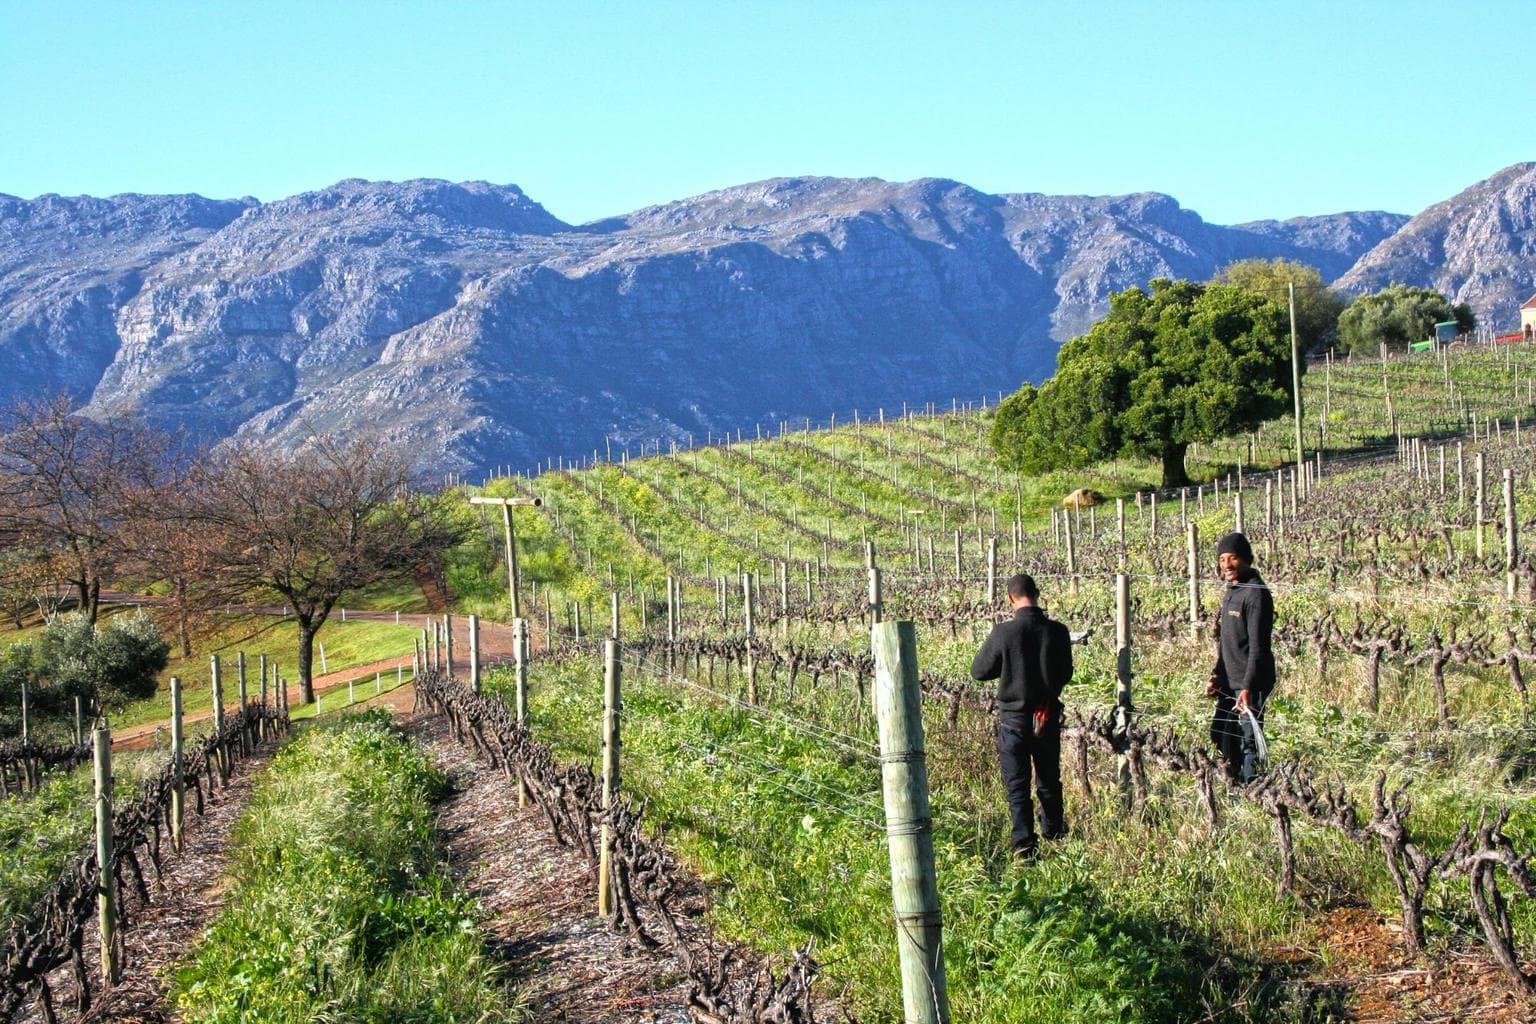 Workers at one of the wineries near Cape Town